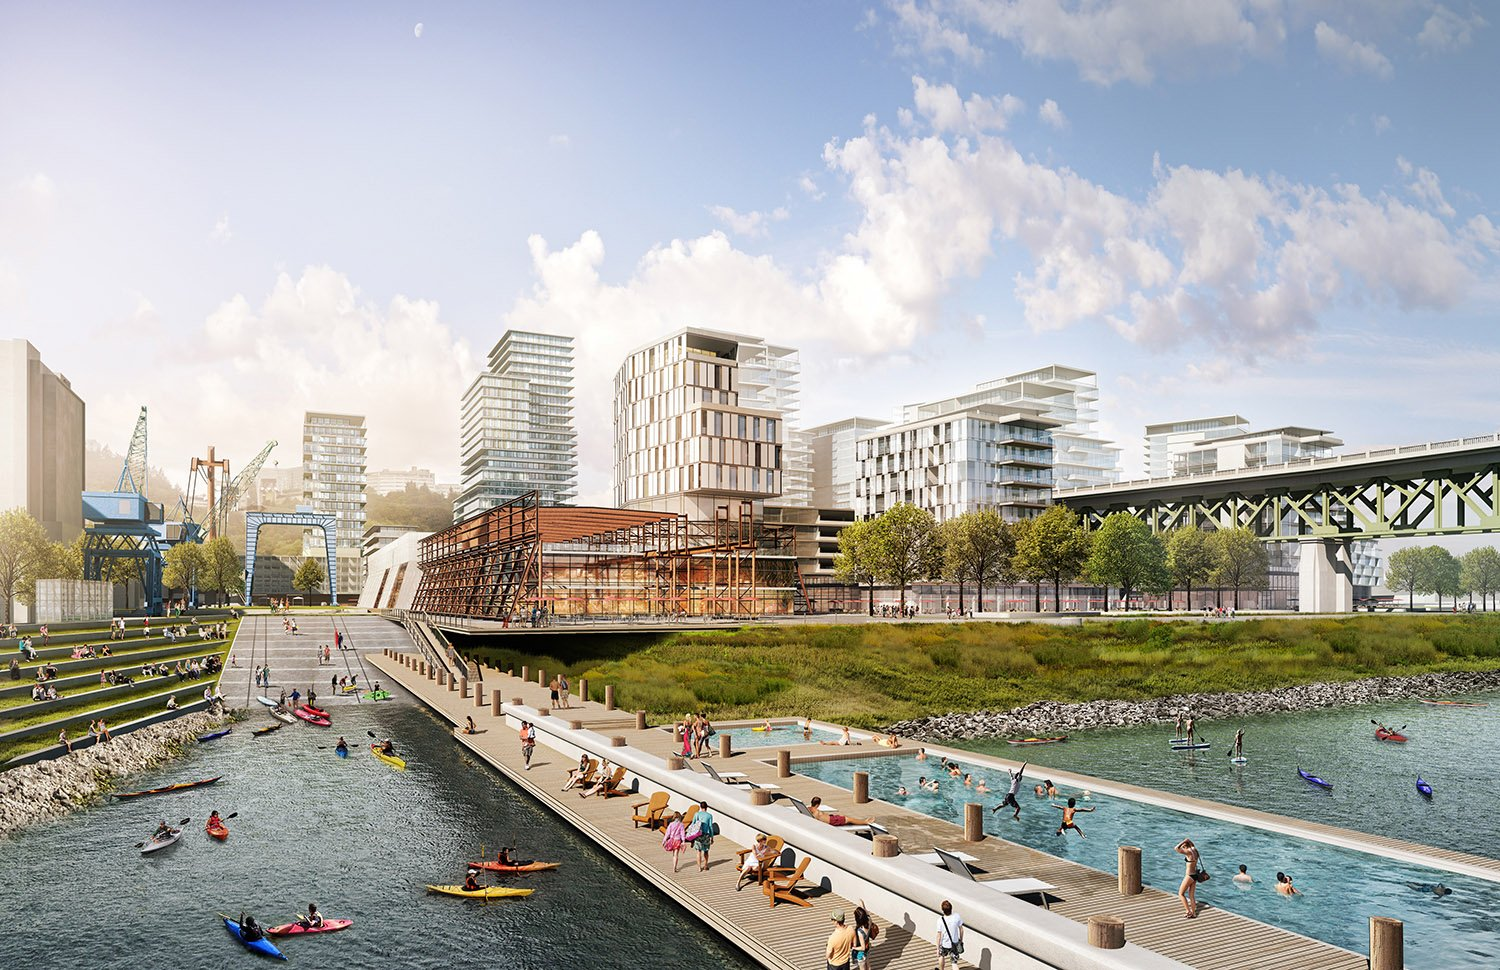 The once private riverfront edge becomes a new public space for events, canoe launches, dinning and entertainment - all accessible by pedestrians, cyclists and boats. }